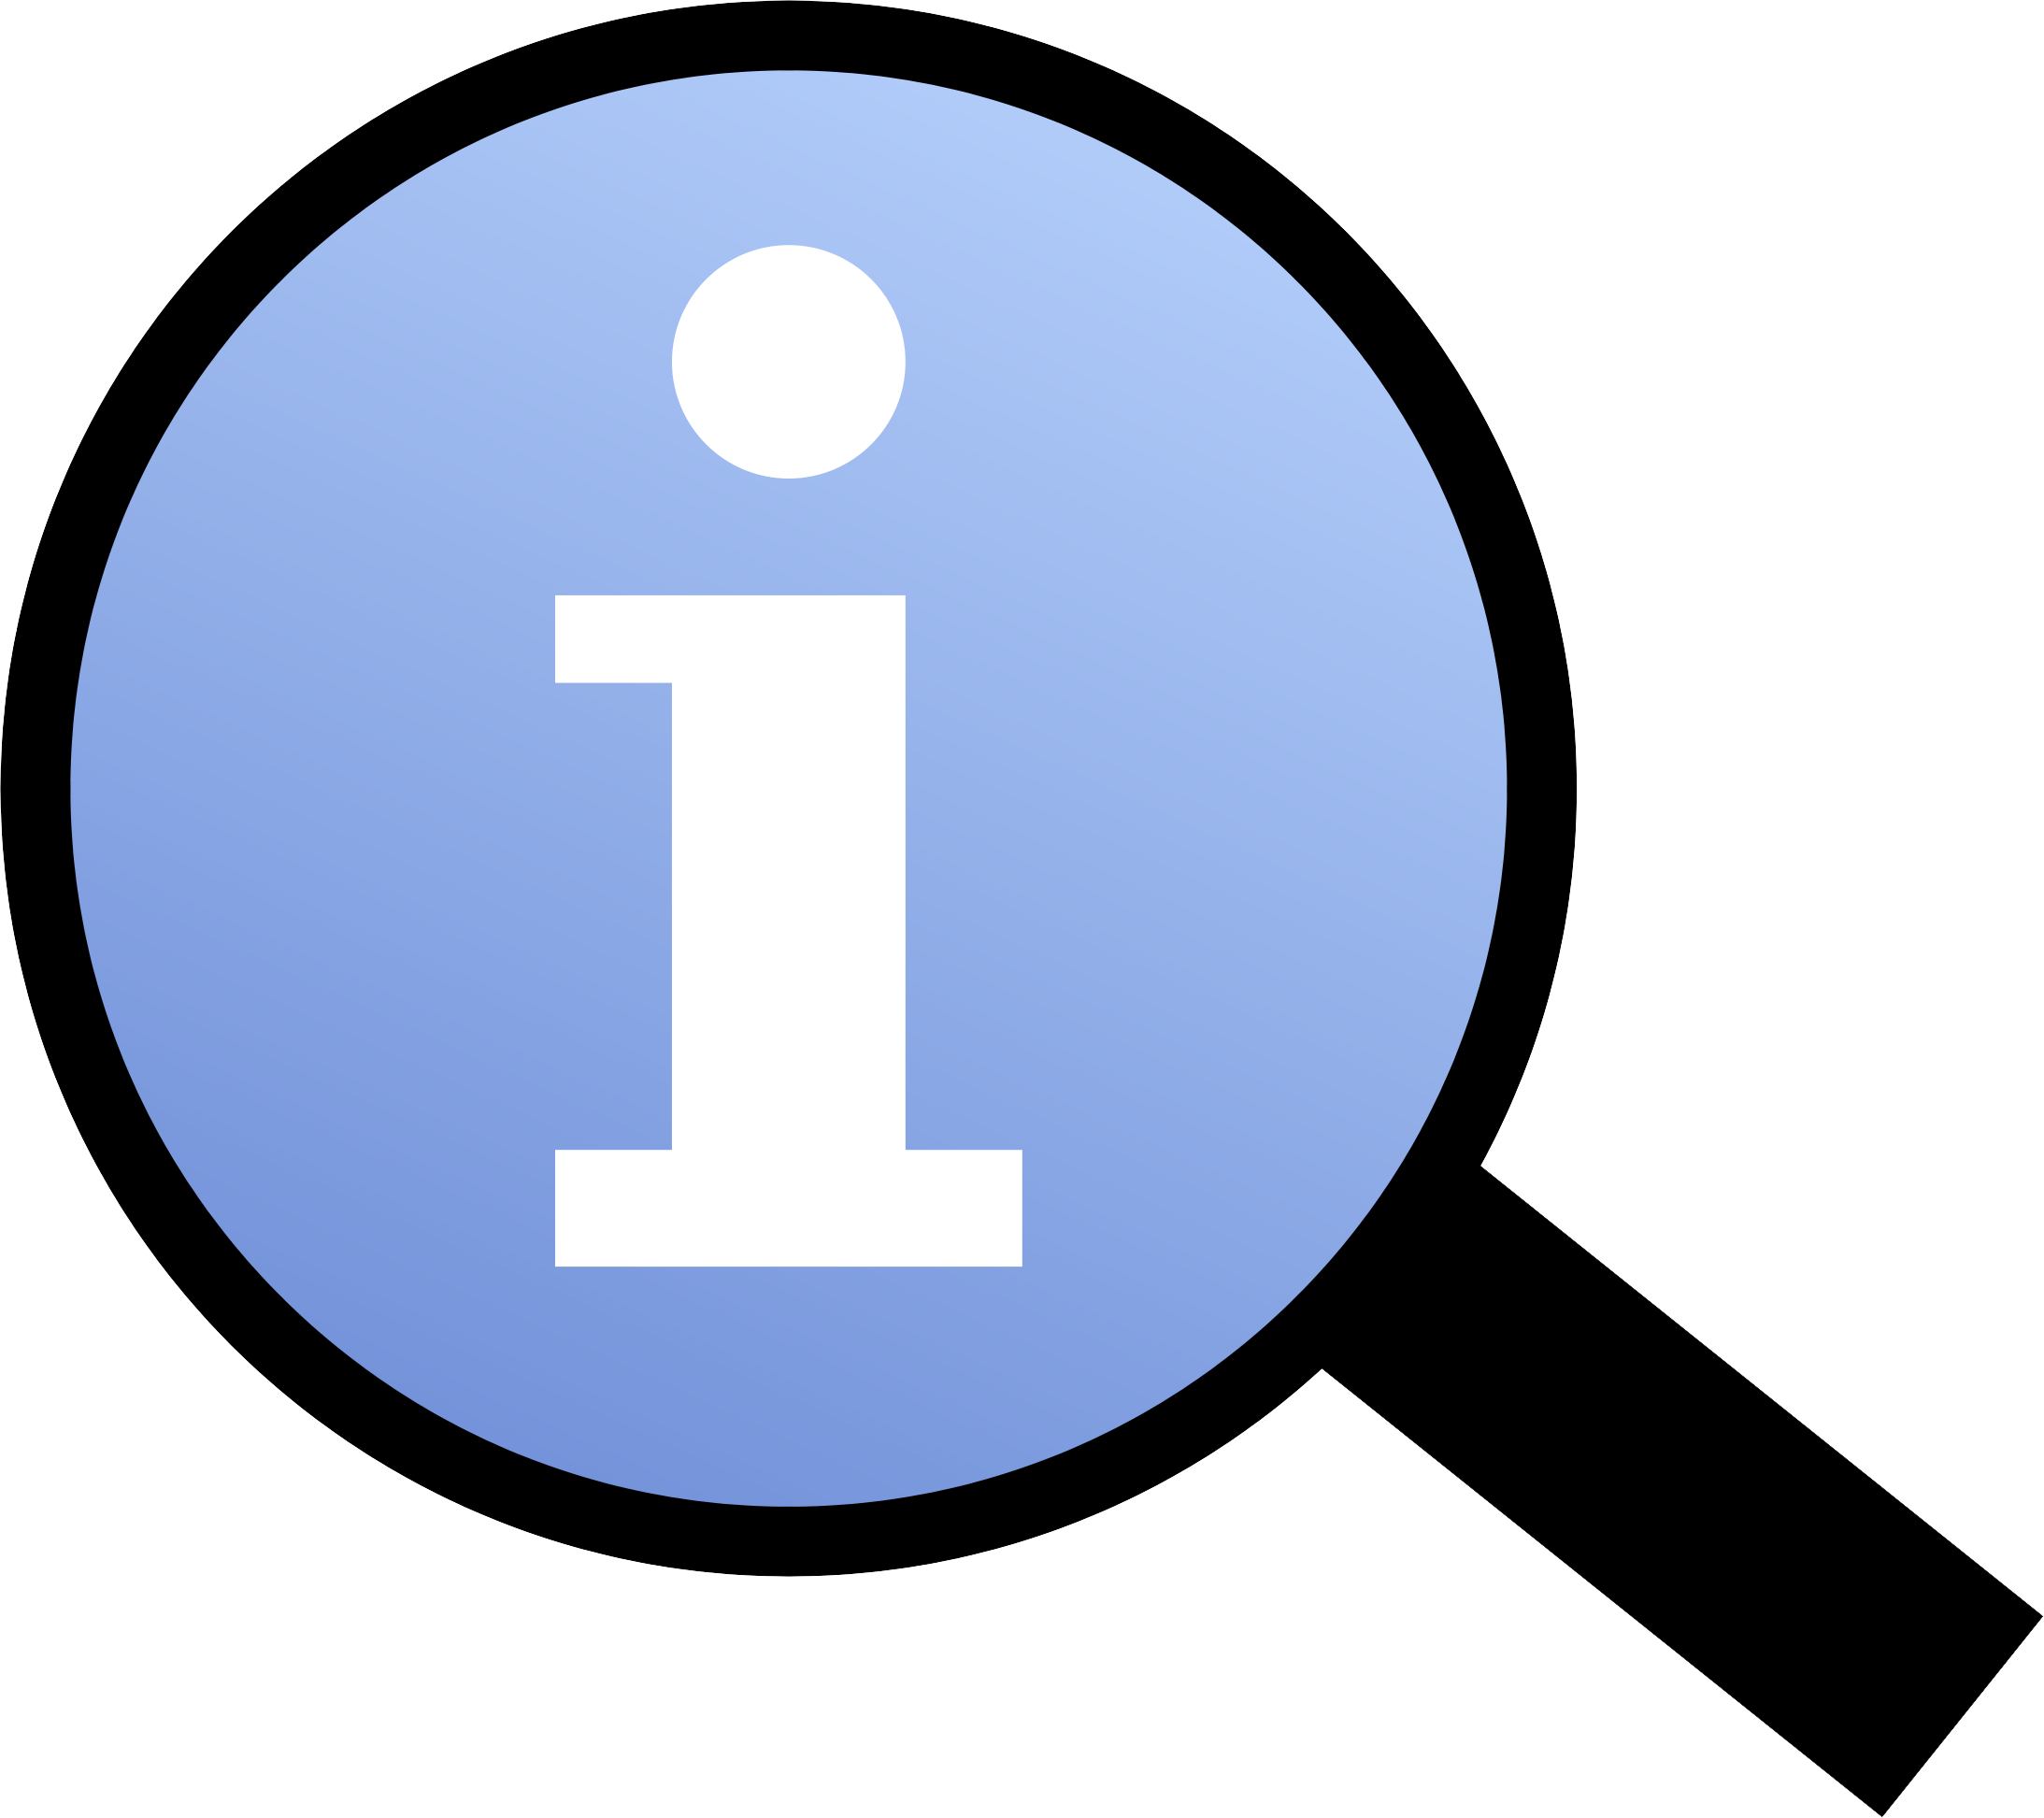 File:Information magnifier icon.png.